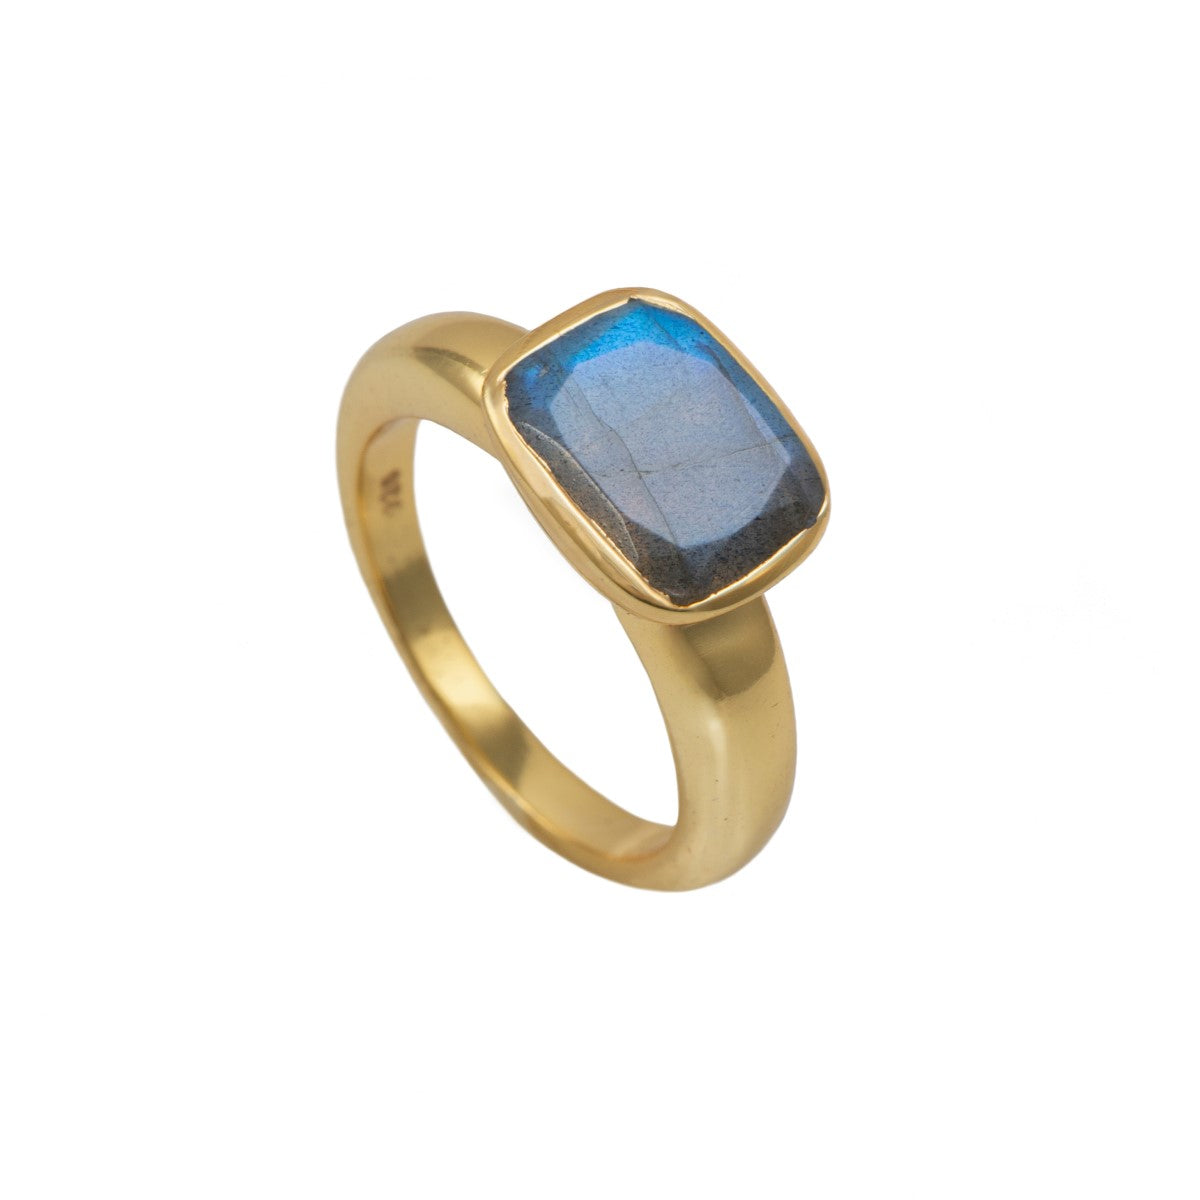 Faceted Rectangular Cut Natural Gemstone Gold Plated Sterling Silver Ring - Labradorite